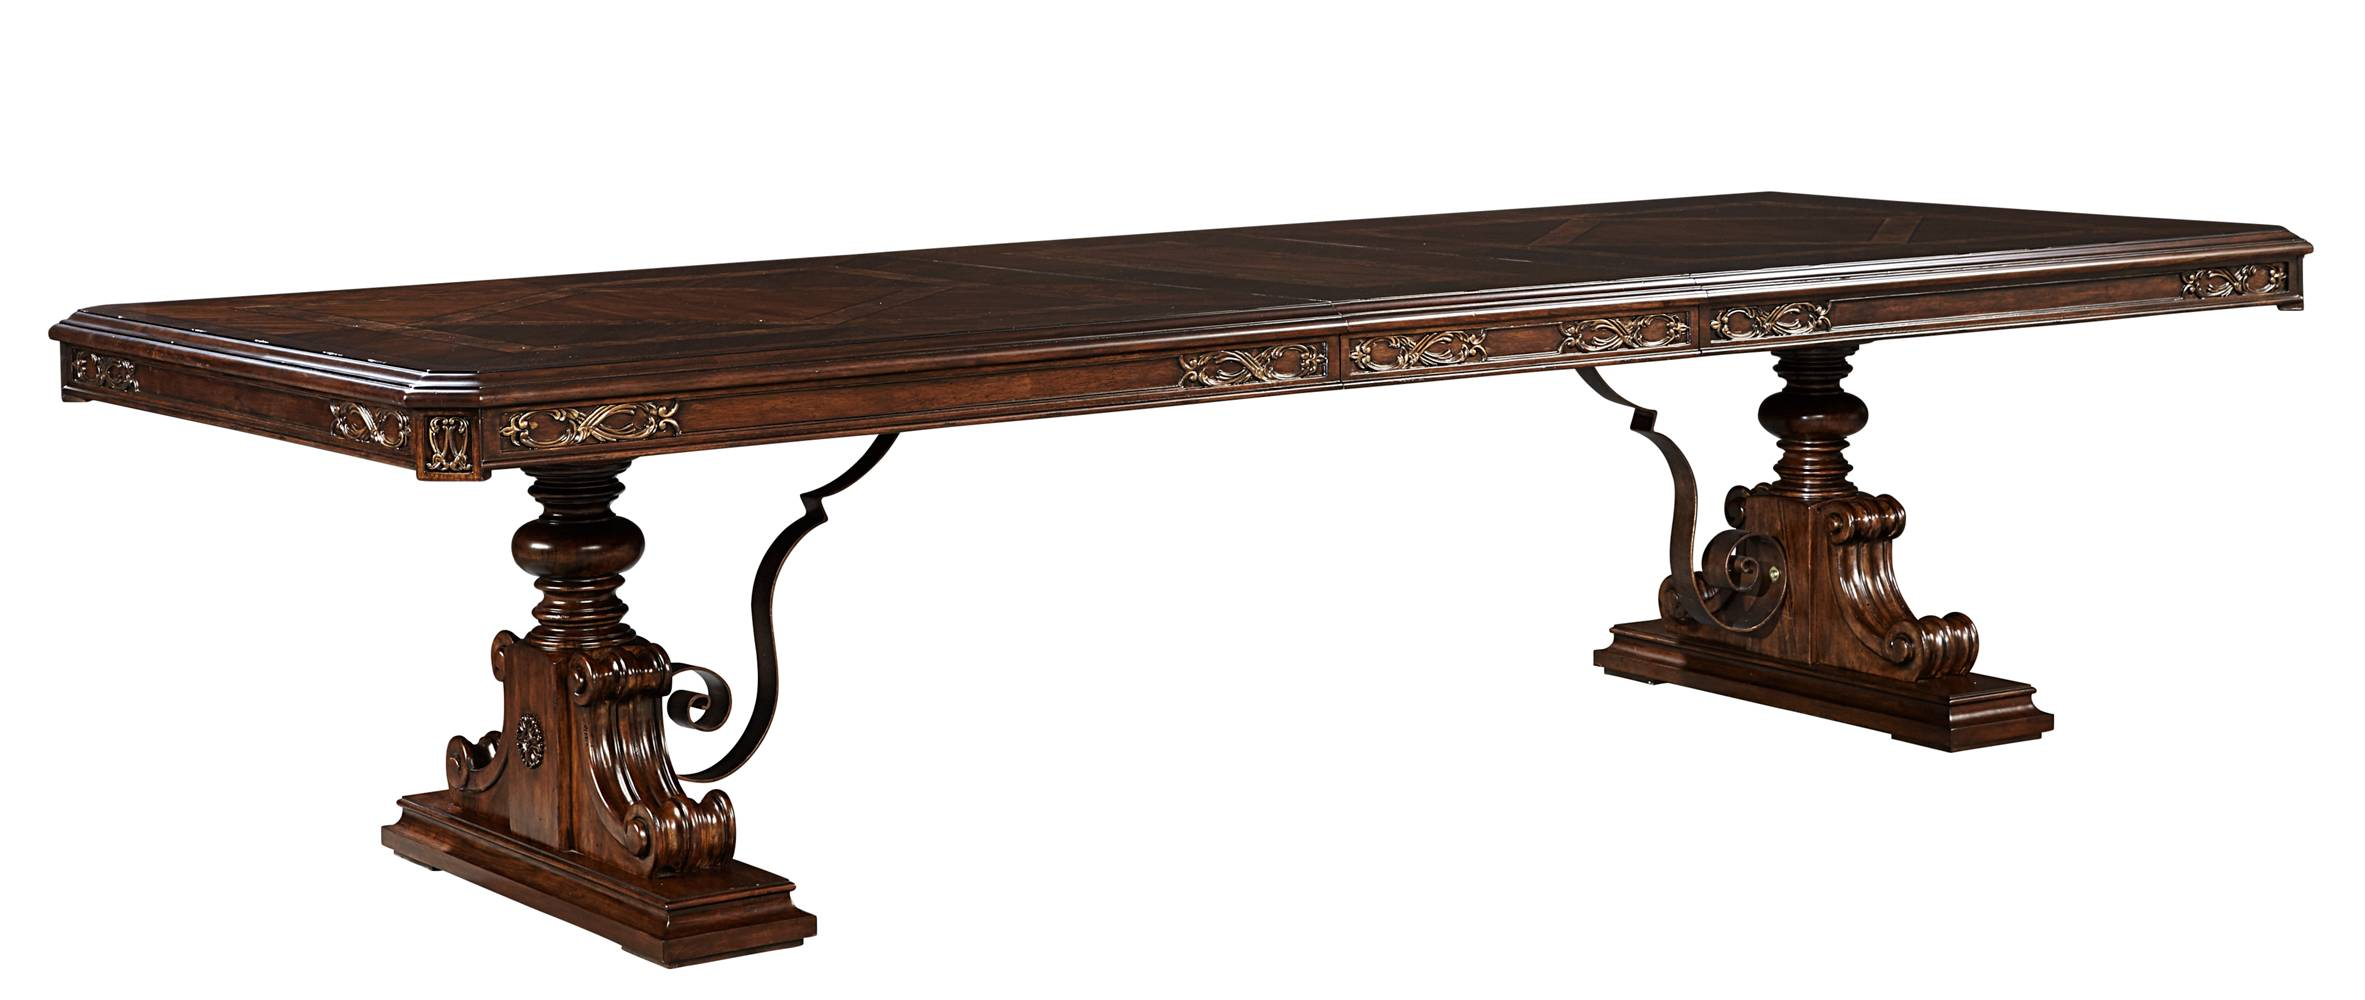 Stanley Furniture Casa D'Onore Trestle Table  - Item Number: 443-11-36